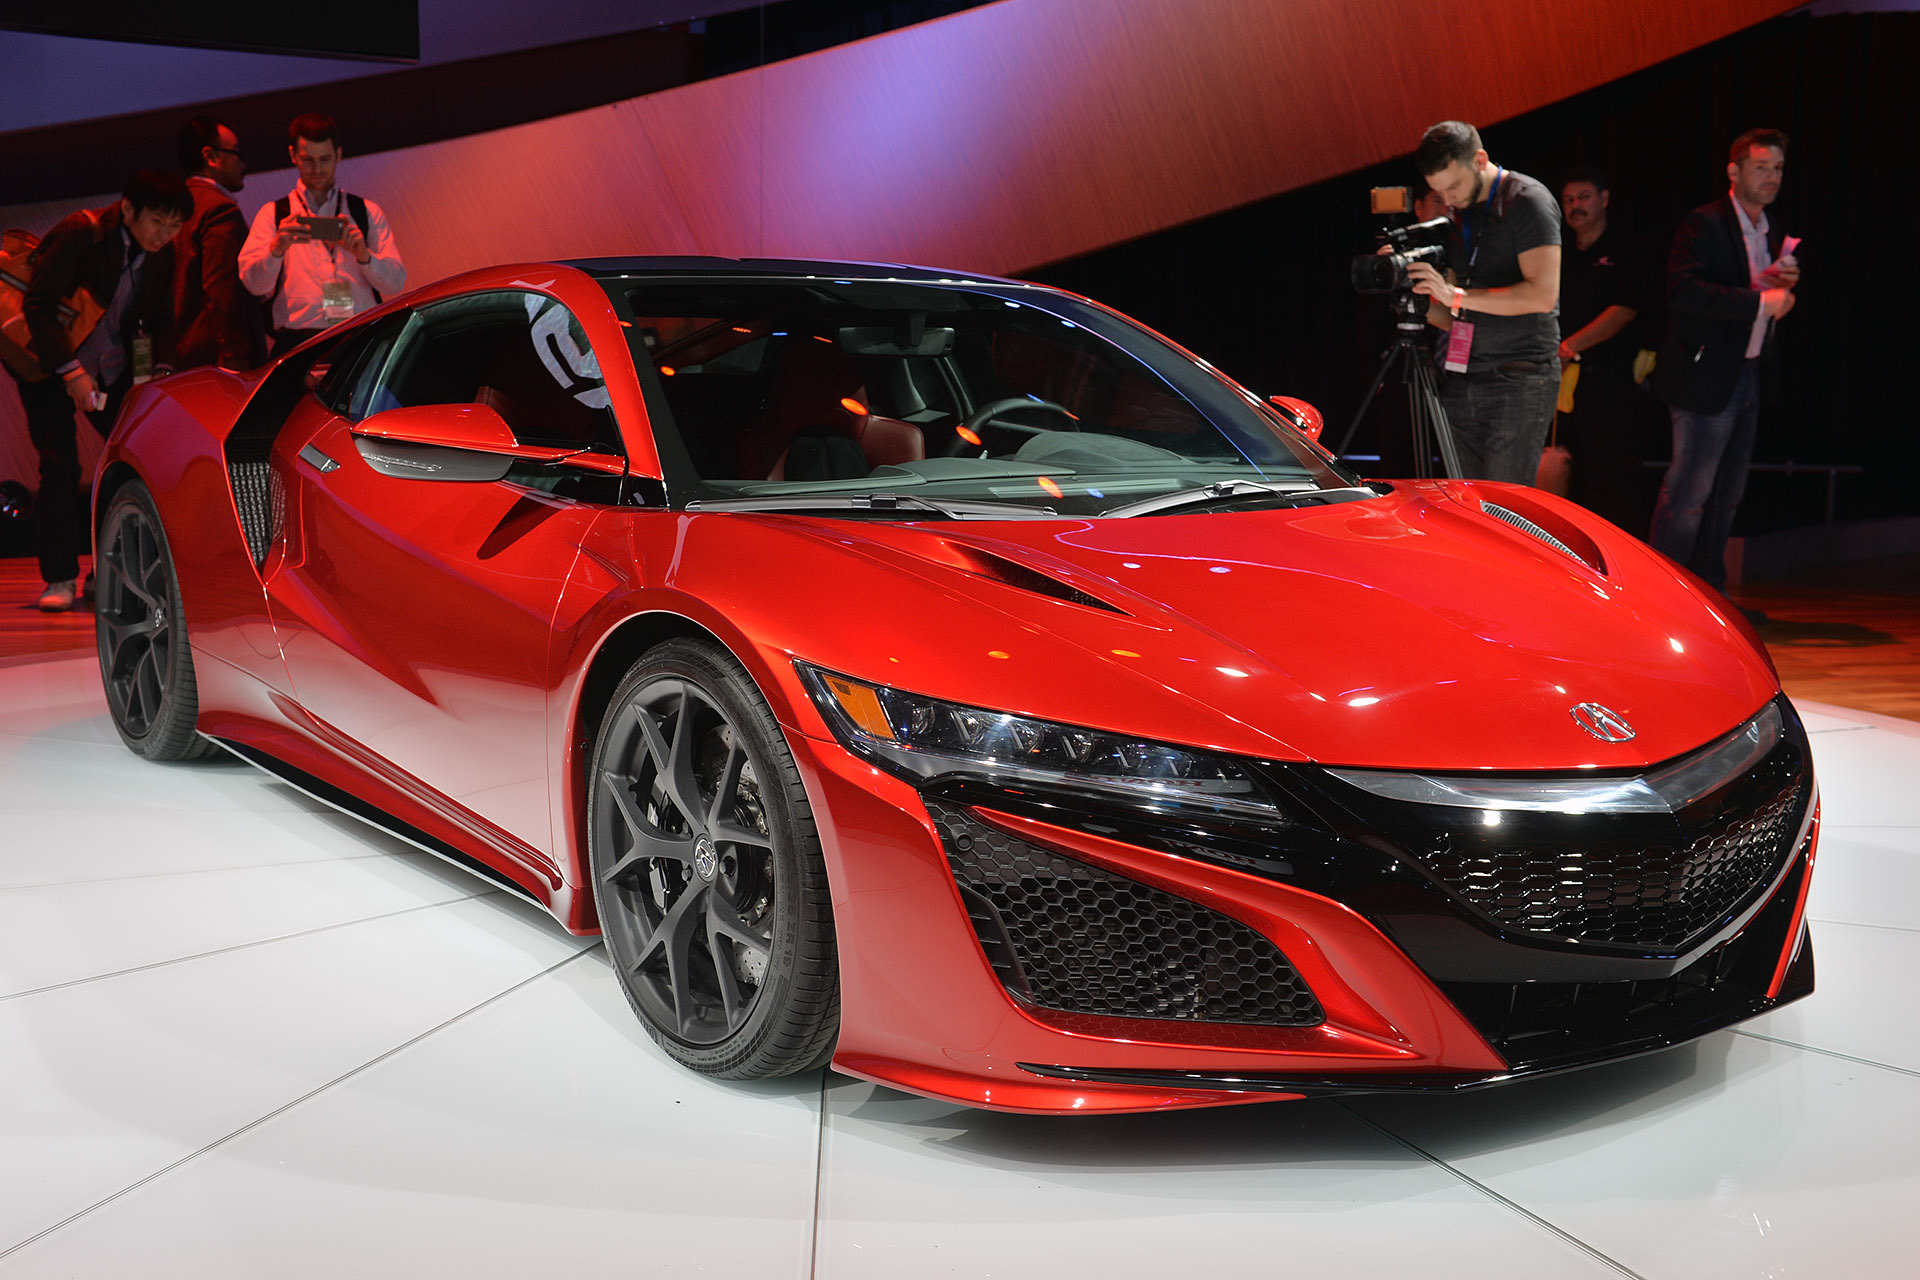 Preview: 2016 Acura NSX